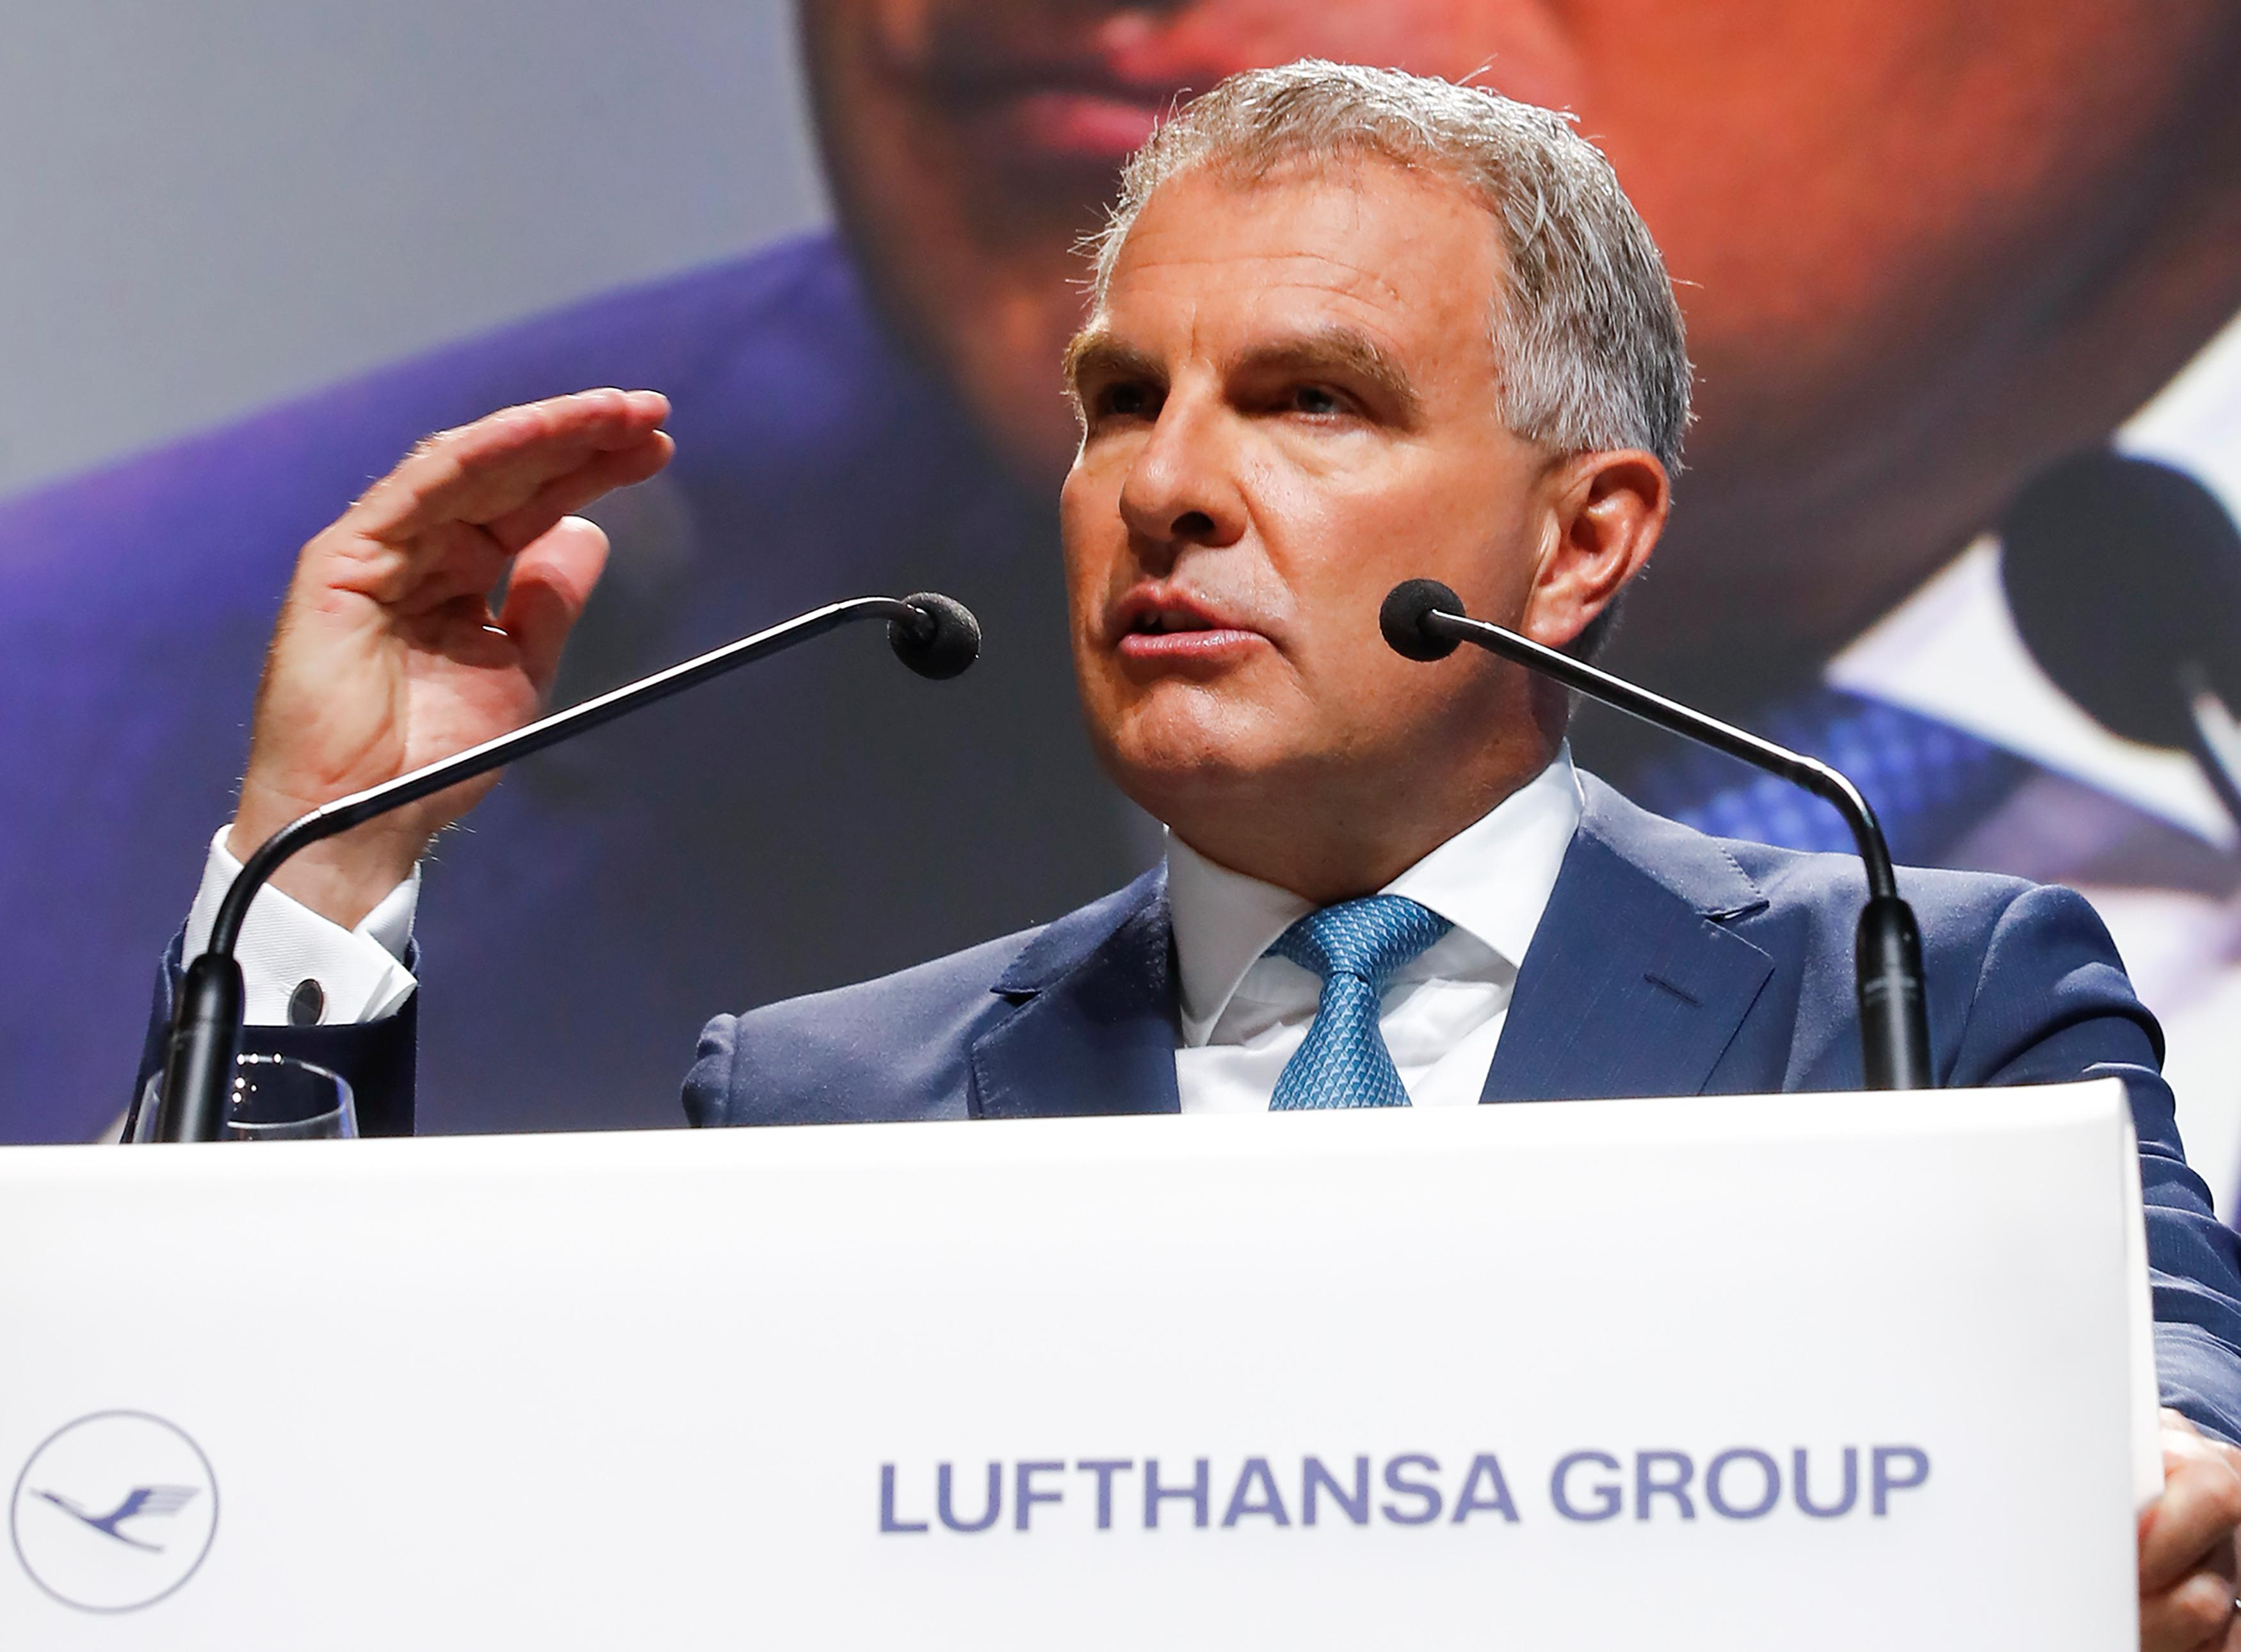 Lufthansa only interested in 'restructured' Alitalia: CEO